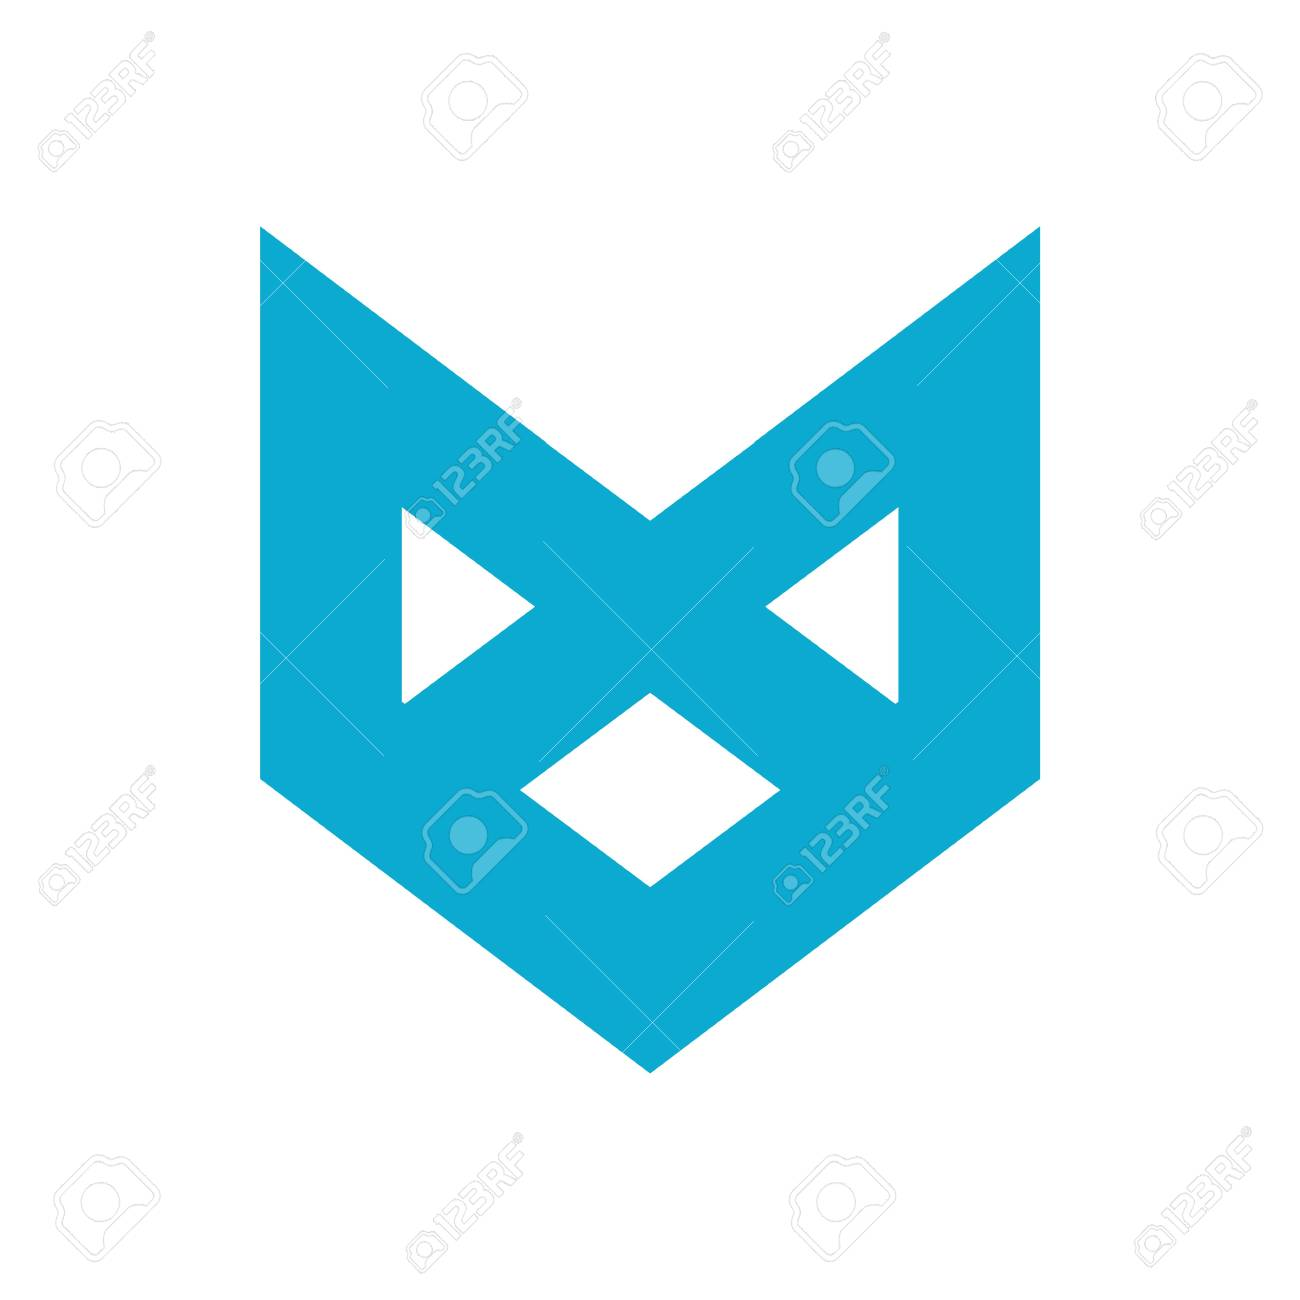 Initial Letter M In A Color Blue Creative Abstract Design For ...